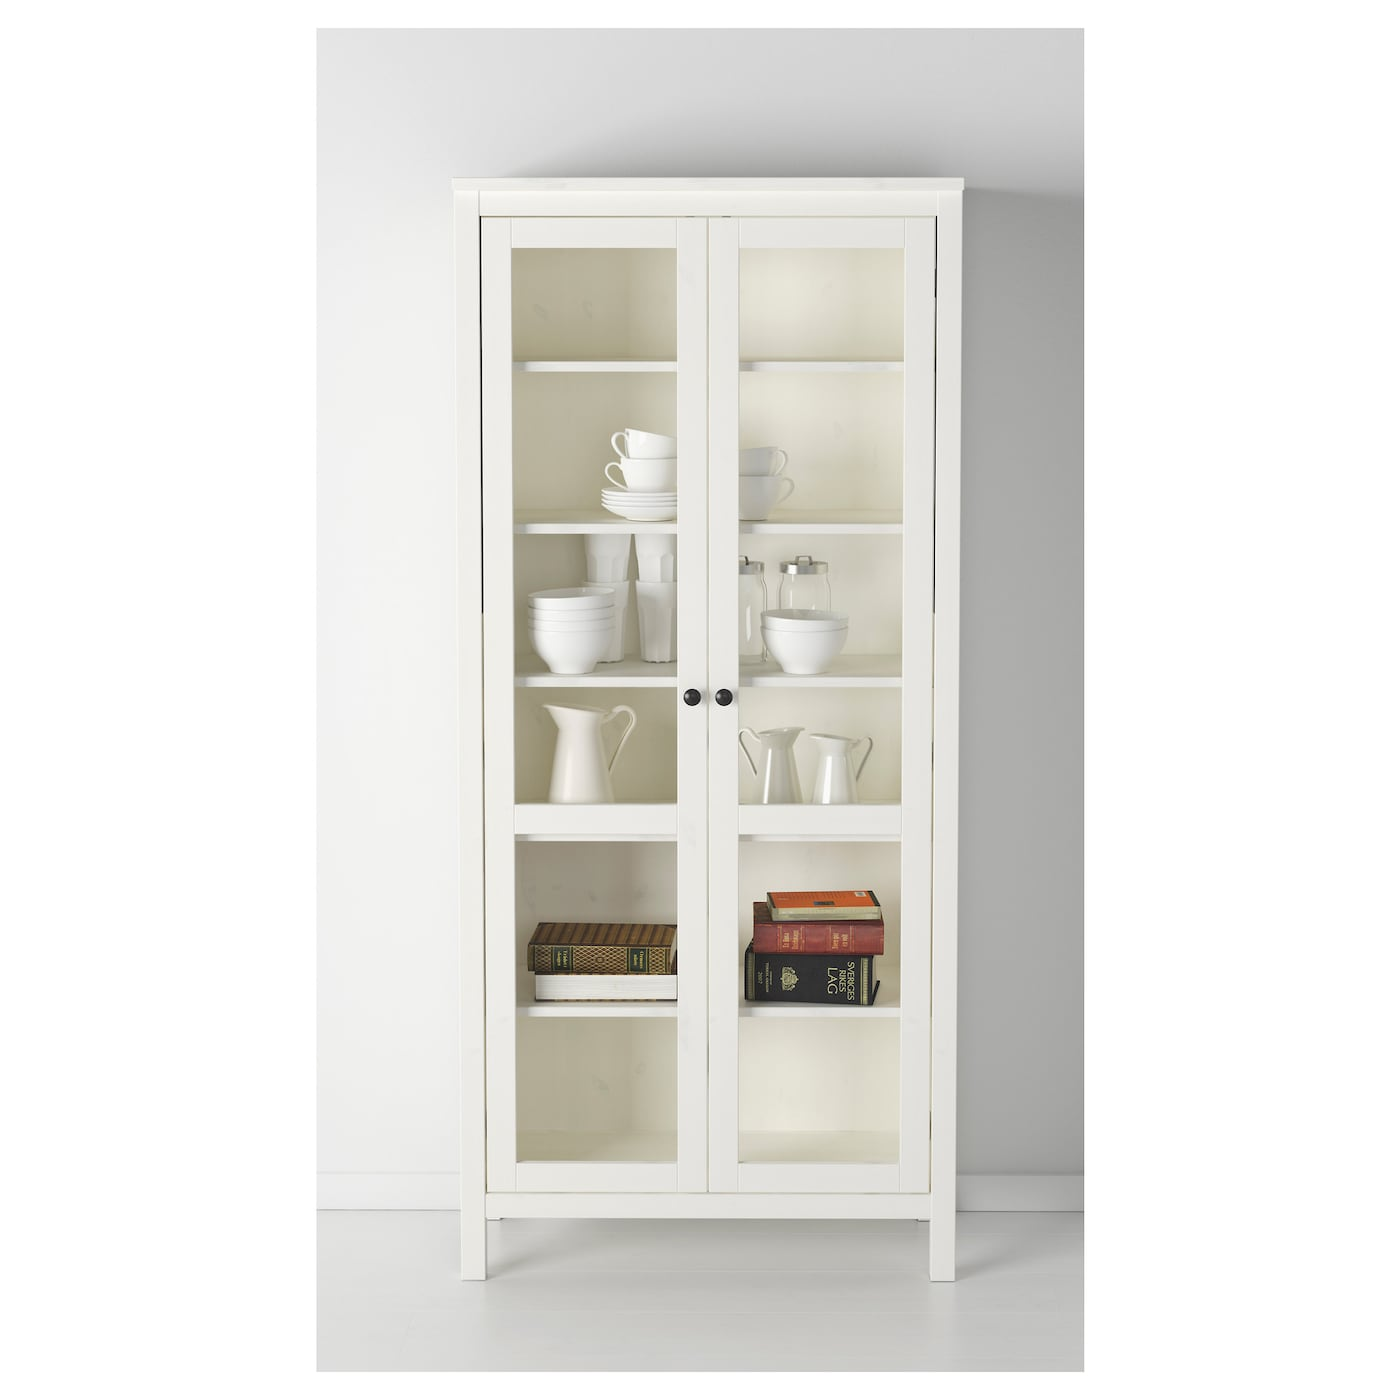 hemnes glass door cabinet white stain 90 x 197 cm ikea. Black Bedroom Furniture Sets. Home Design Ideas